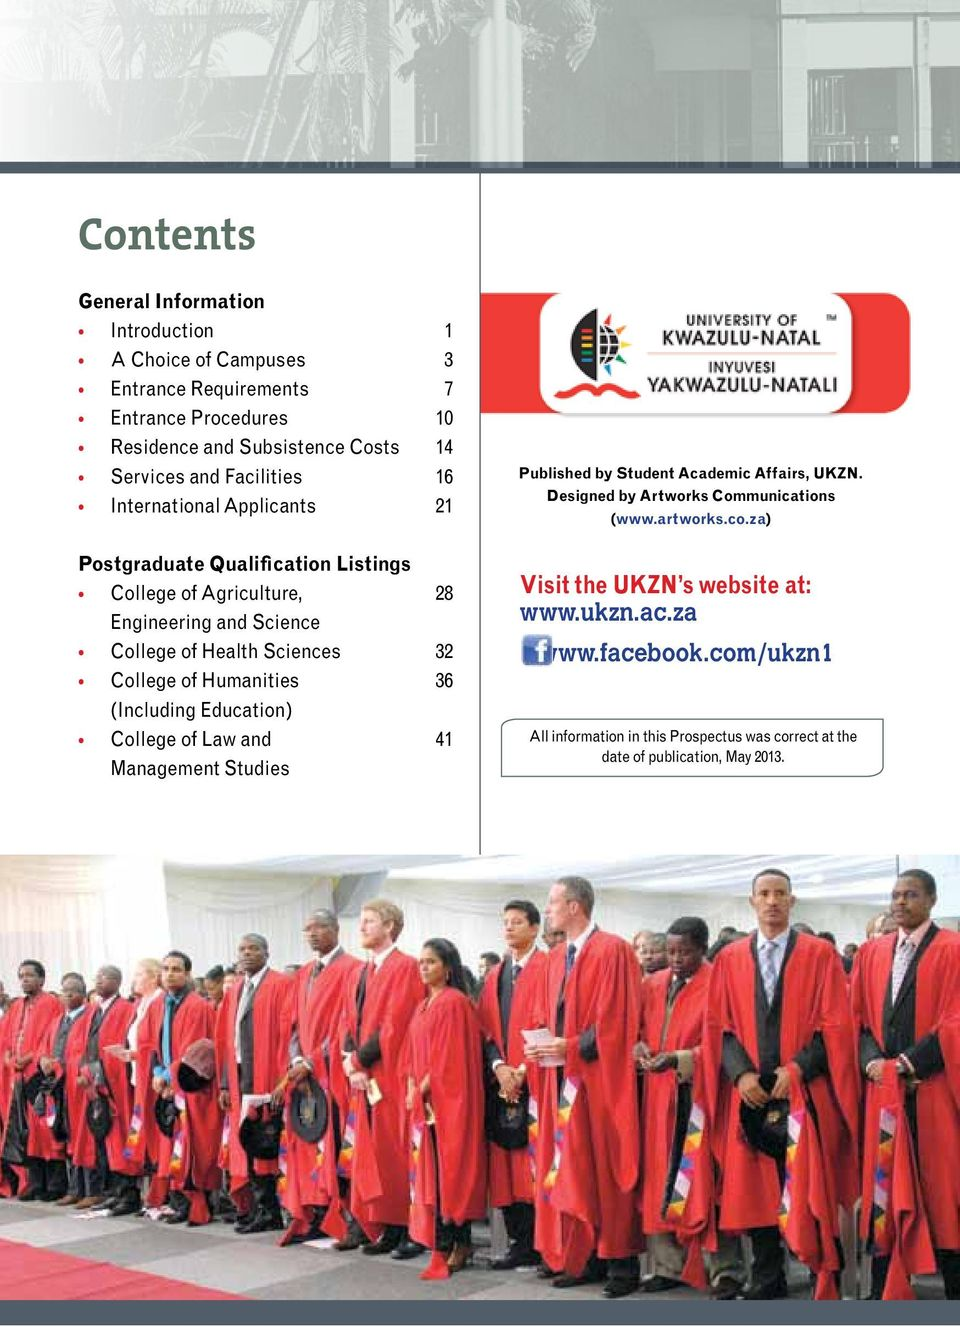 College of Humanities 36 (Including Education) College of Law and 41 Management Studies Published by Student Academic Affairs, UKZN.